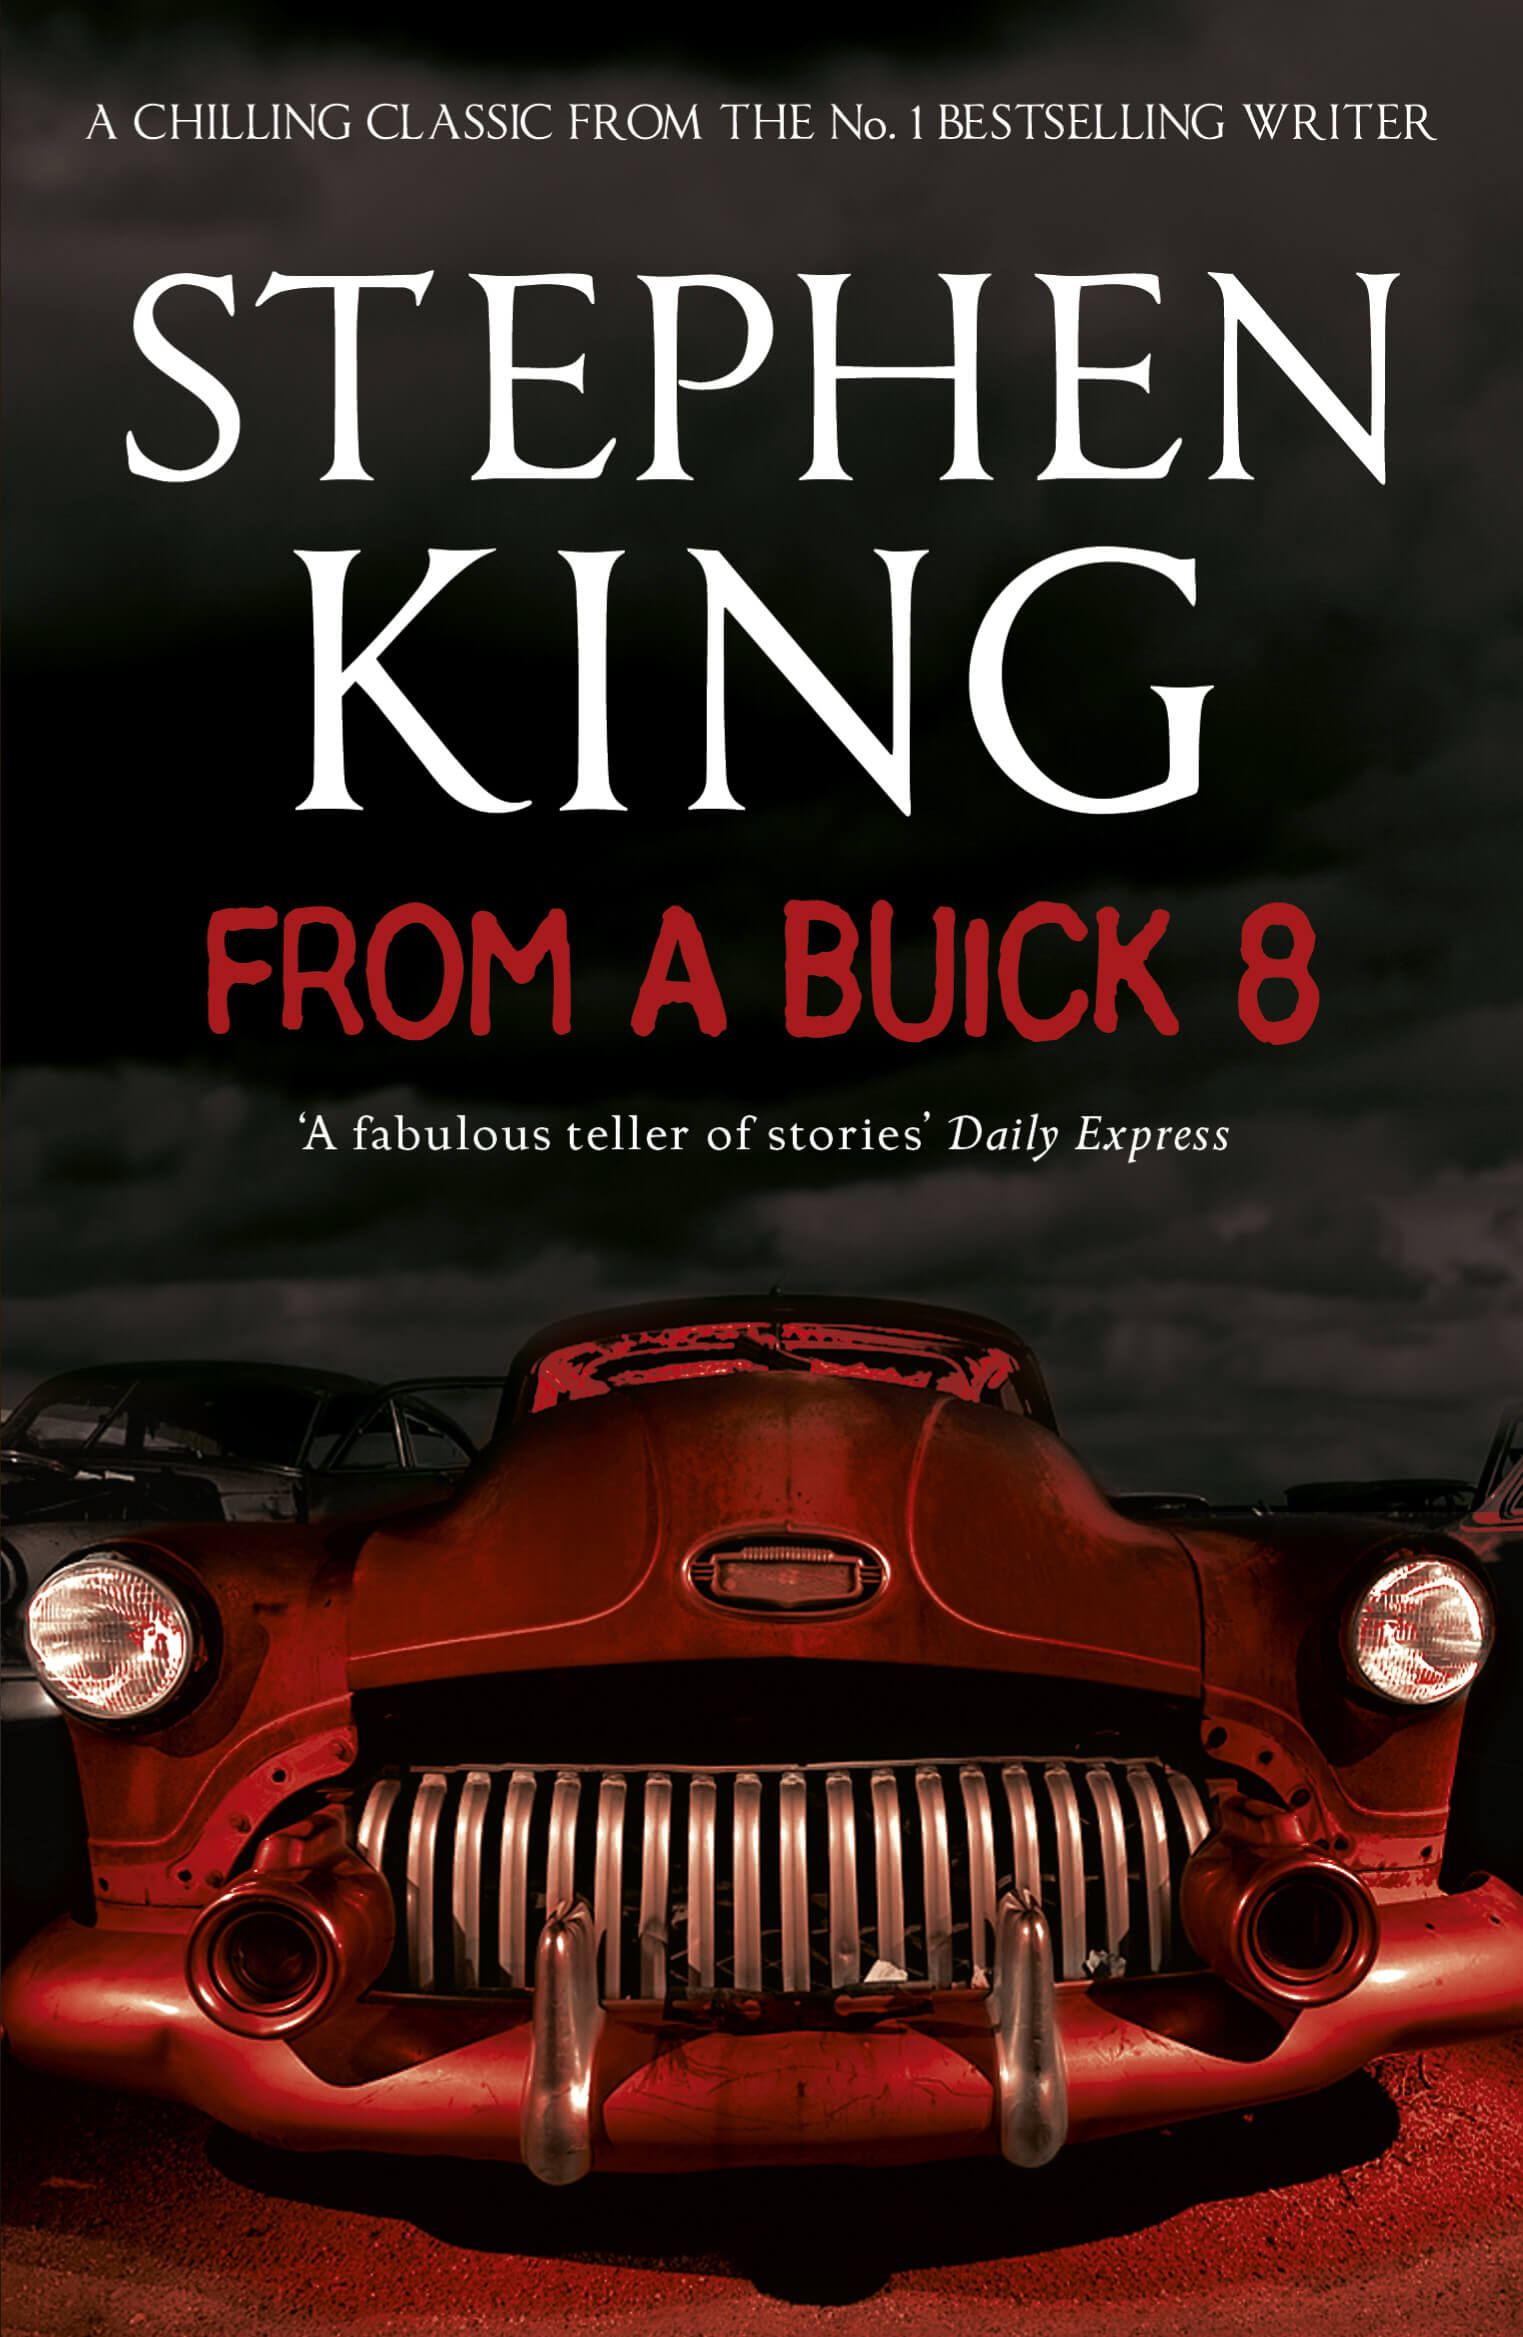 From_A_Buick8_StephenKing.jpg